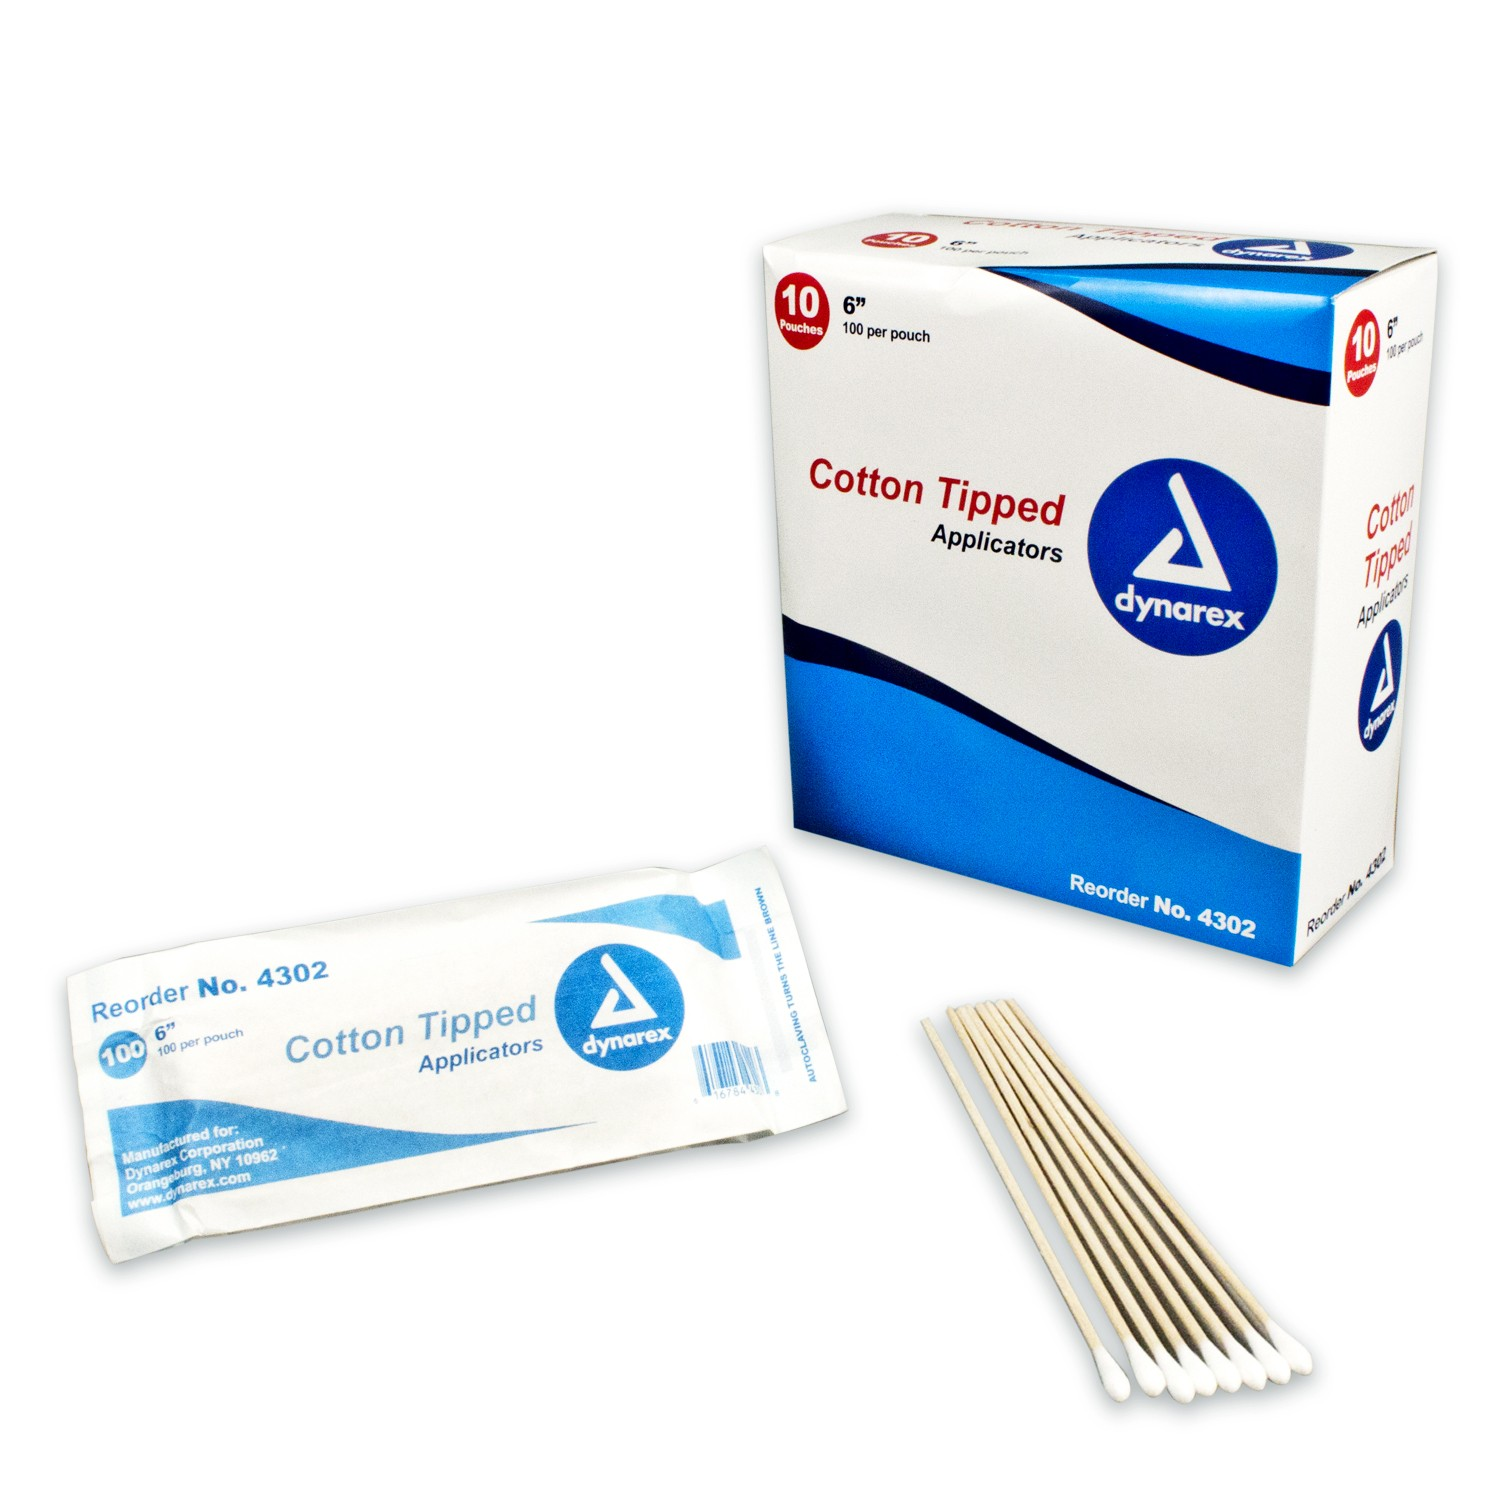 Cotton Tipped Wood Applicators Non-sterile 6""